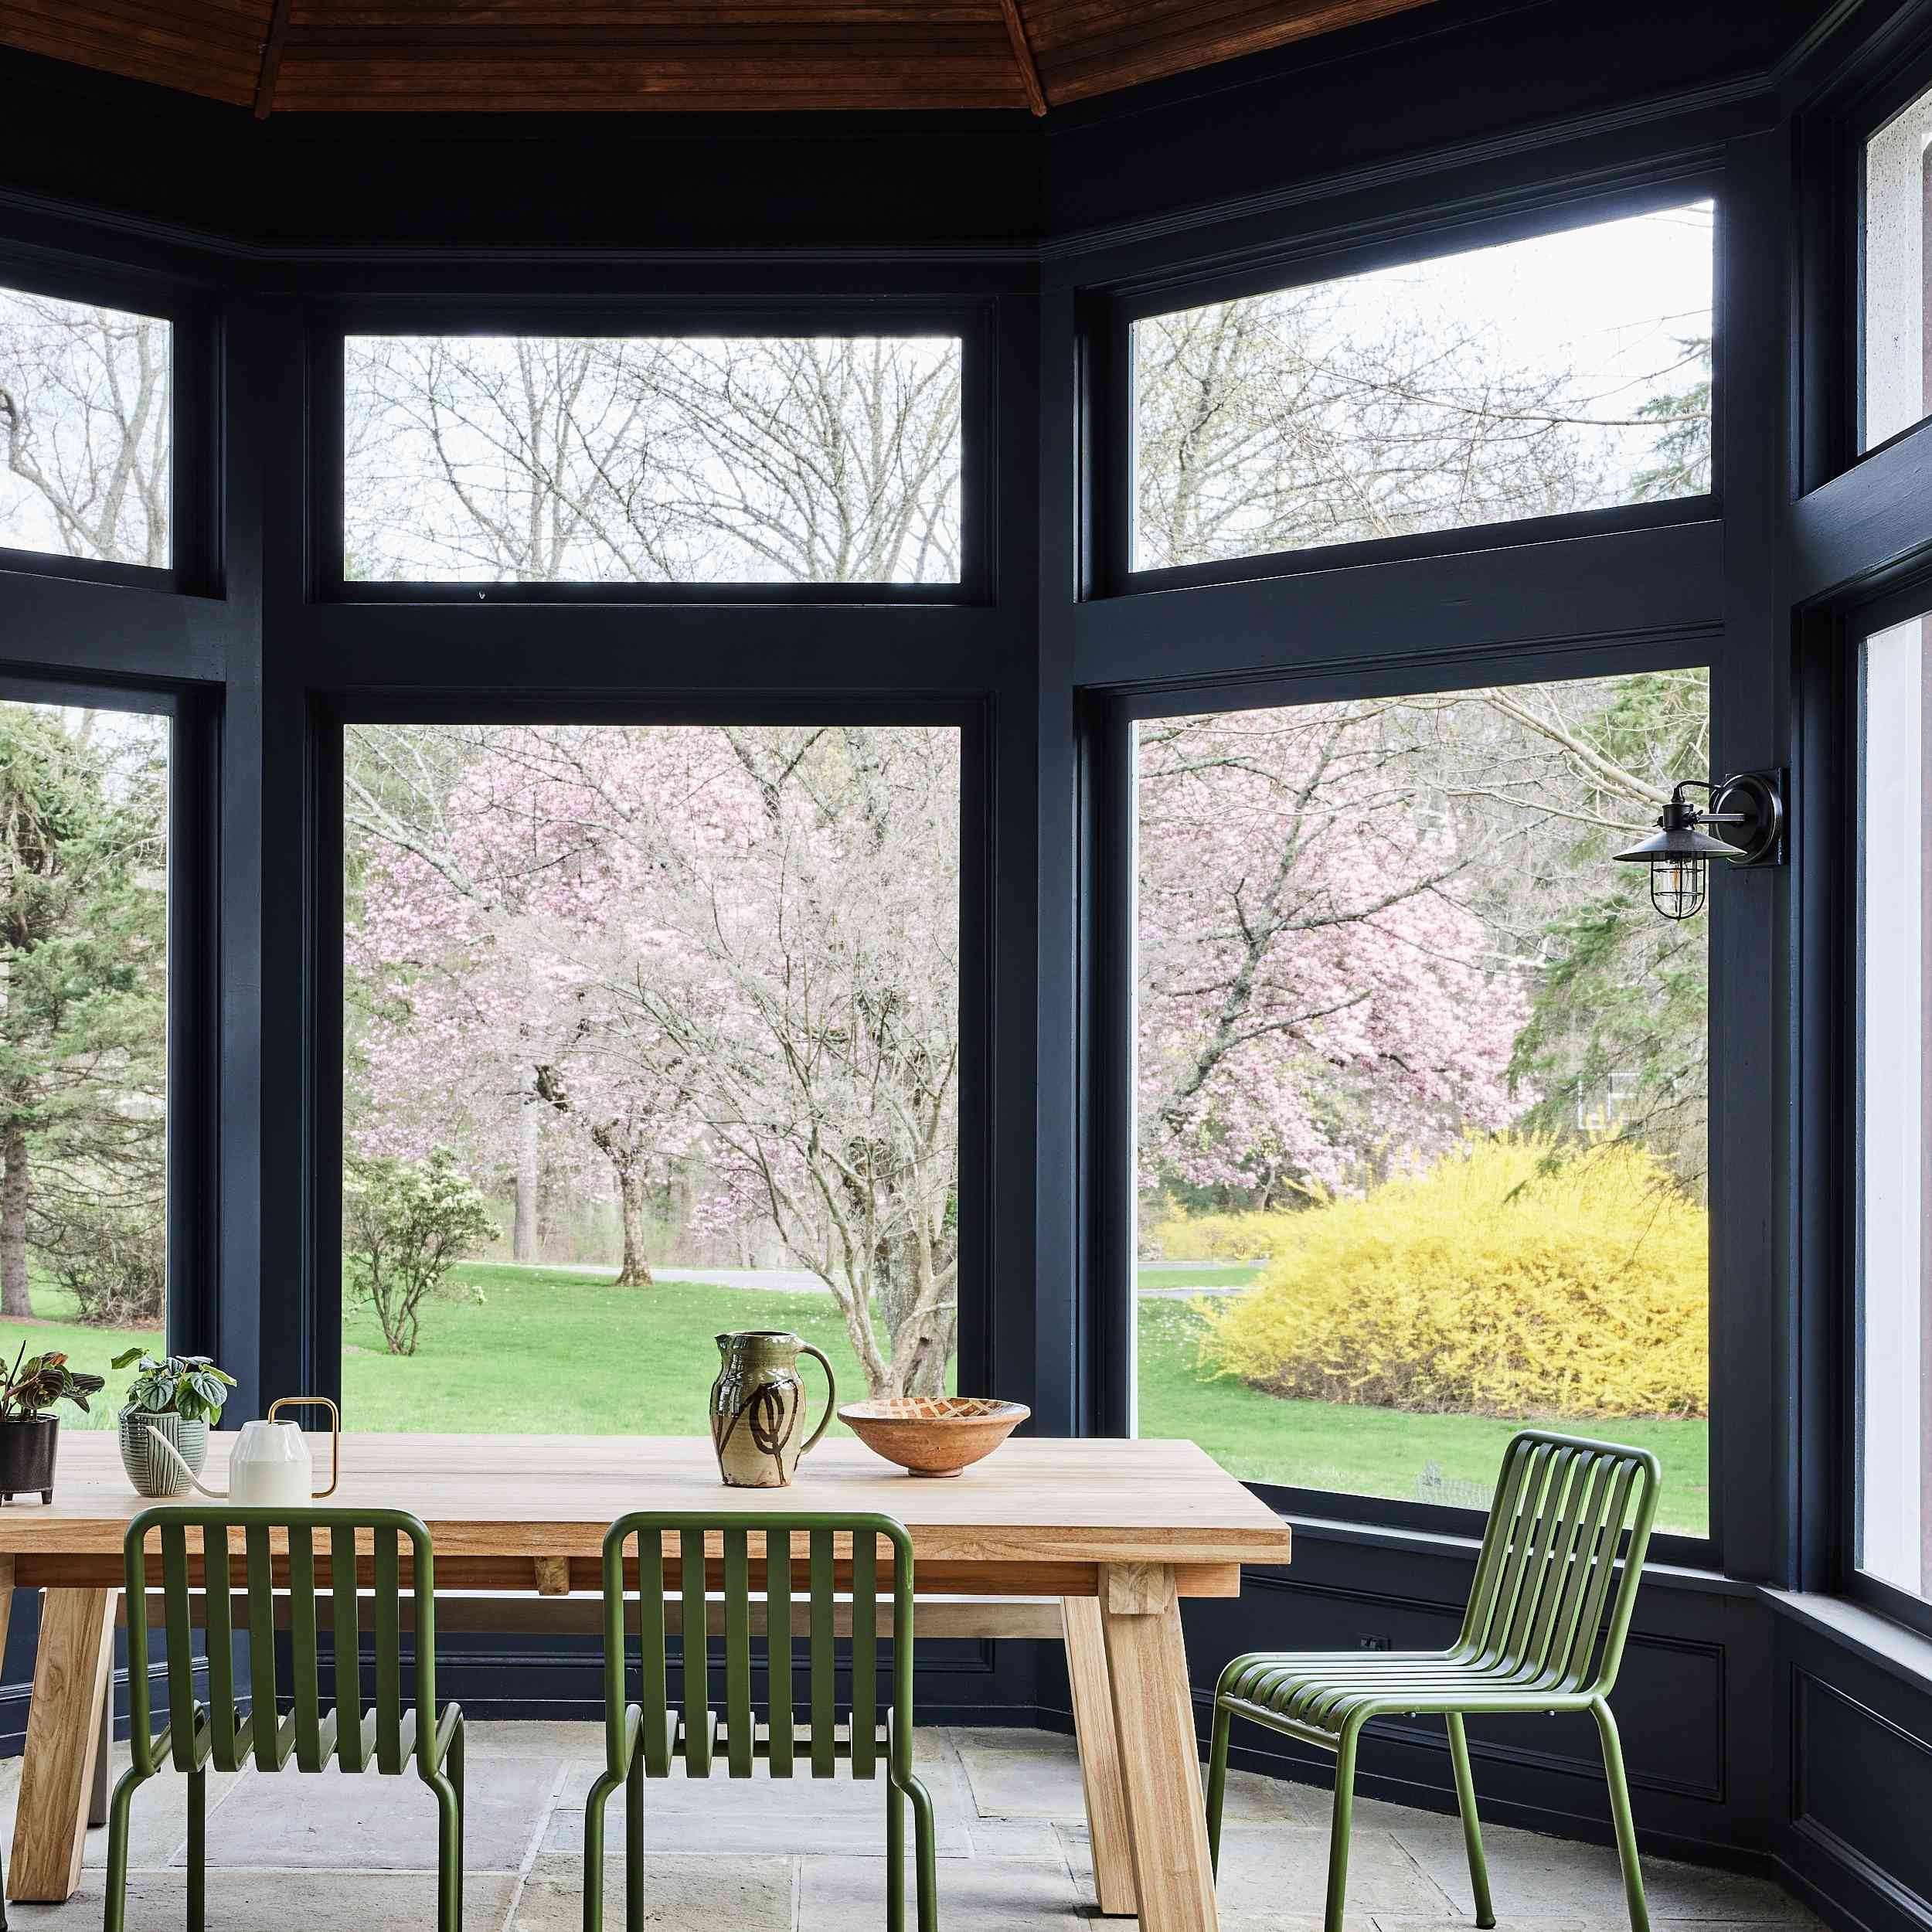 connecticut farmhouse home tour - solarium with green metal chairs and wood table